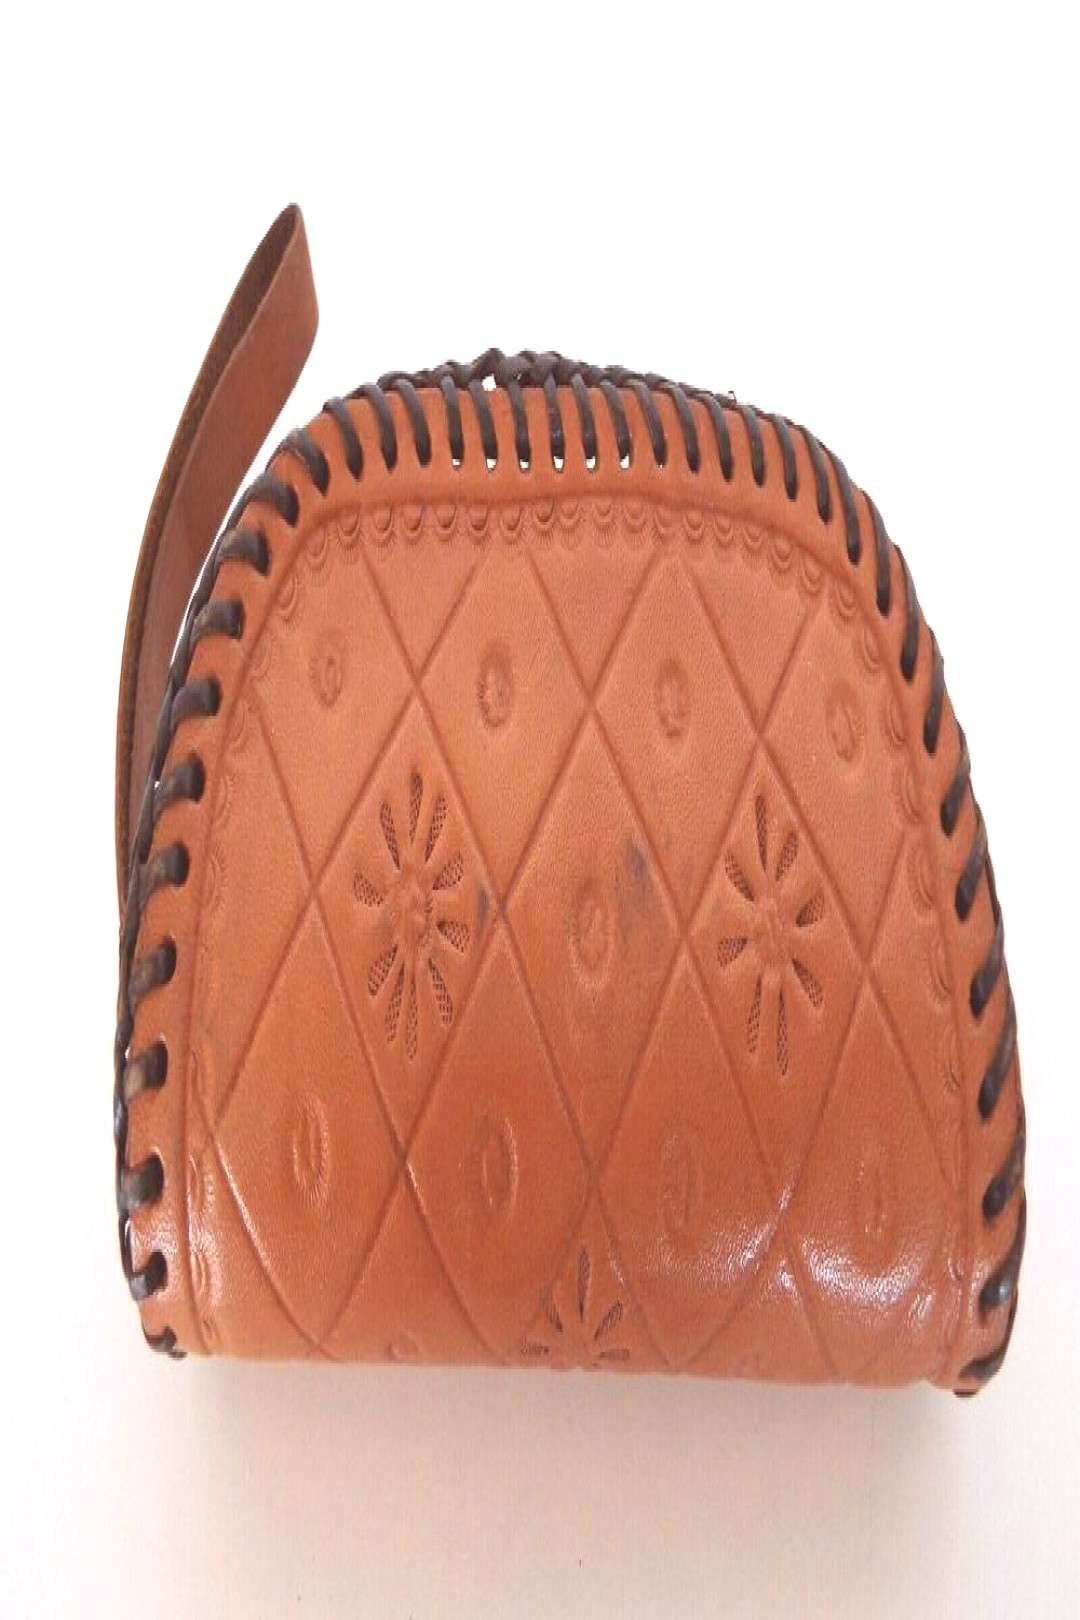 Stamped Leather Wristlet Clutch Laced Edges Coin Purse Rockabilly Lot B